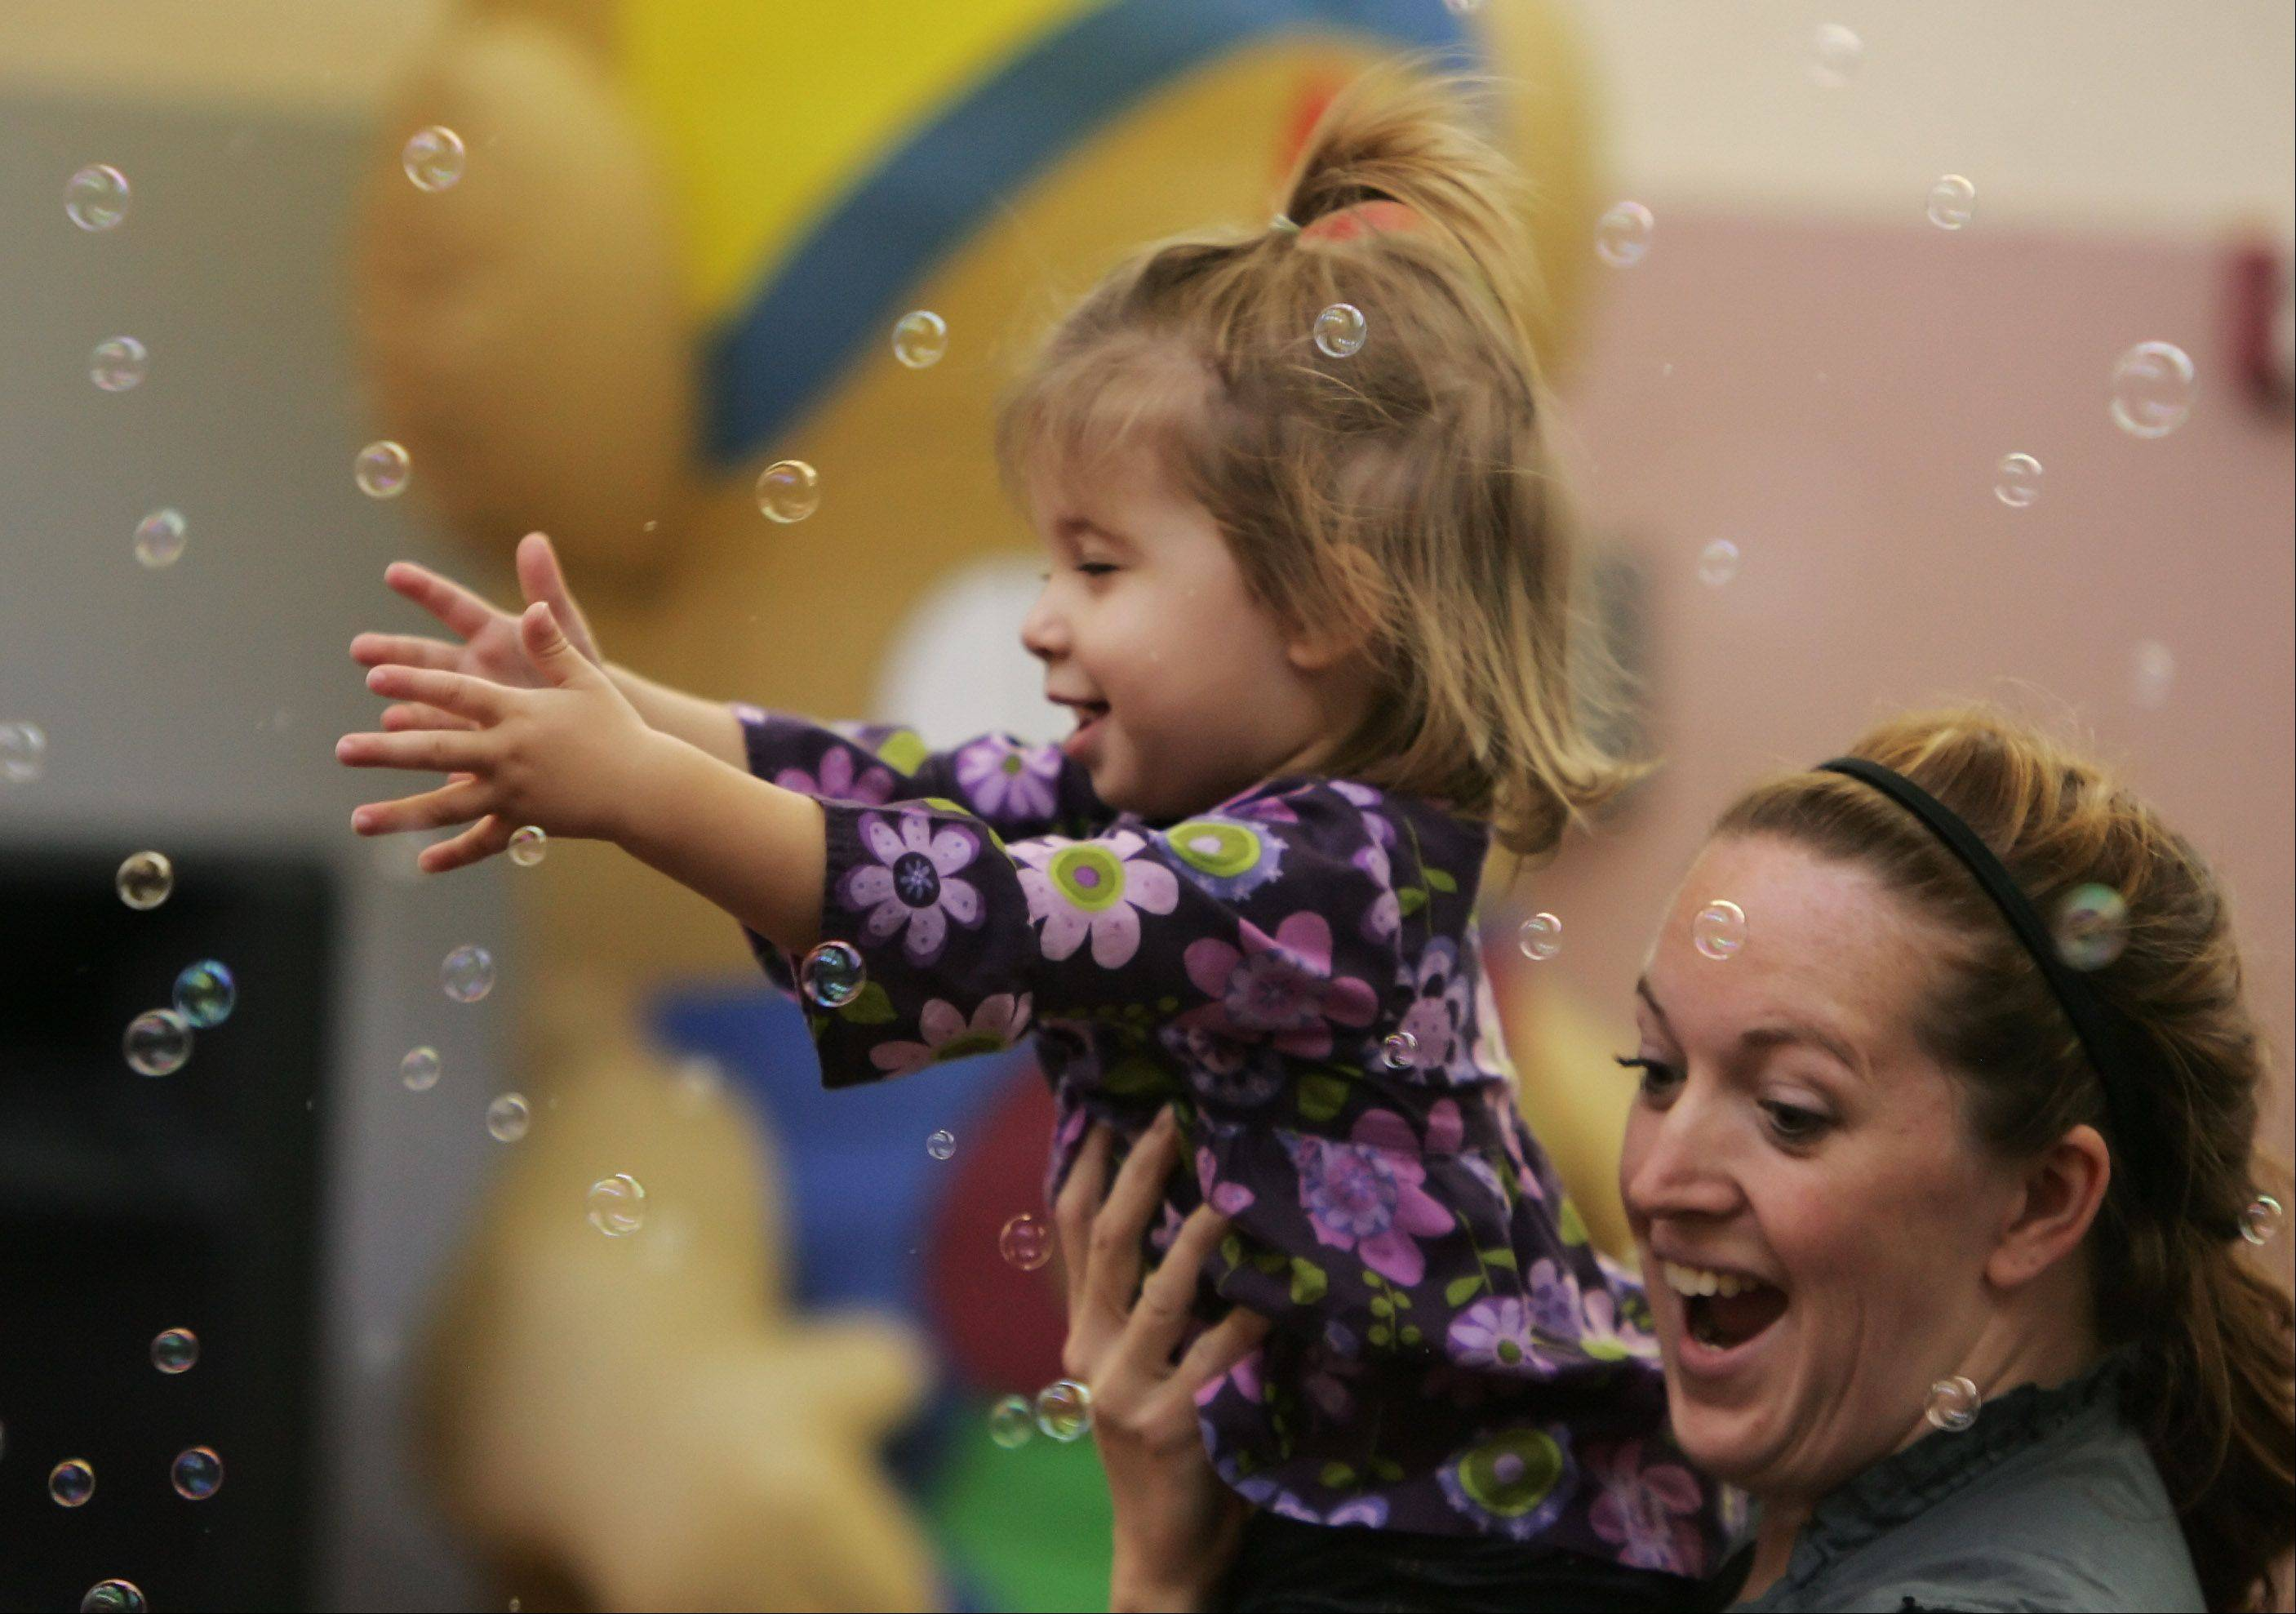 September Larson, of Lindenhurst, holds her niece, Lucy Lewis, as she reaches for bubbles during the Beach Party Tuesday at Lake Villa District Library. Award-winning musician Dave Rudolf entertained children and adults with music and dance as children learn to hula dance and limbo.